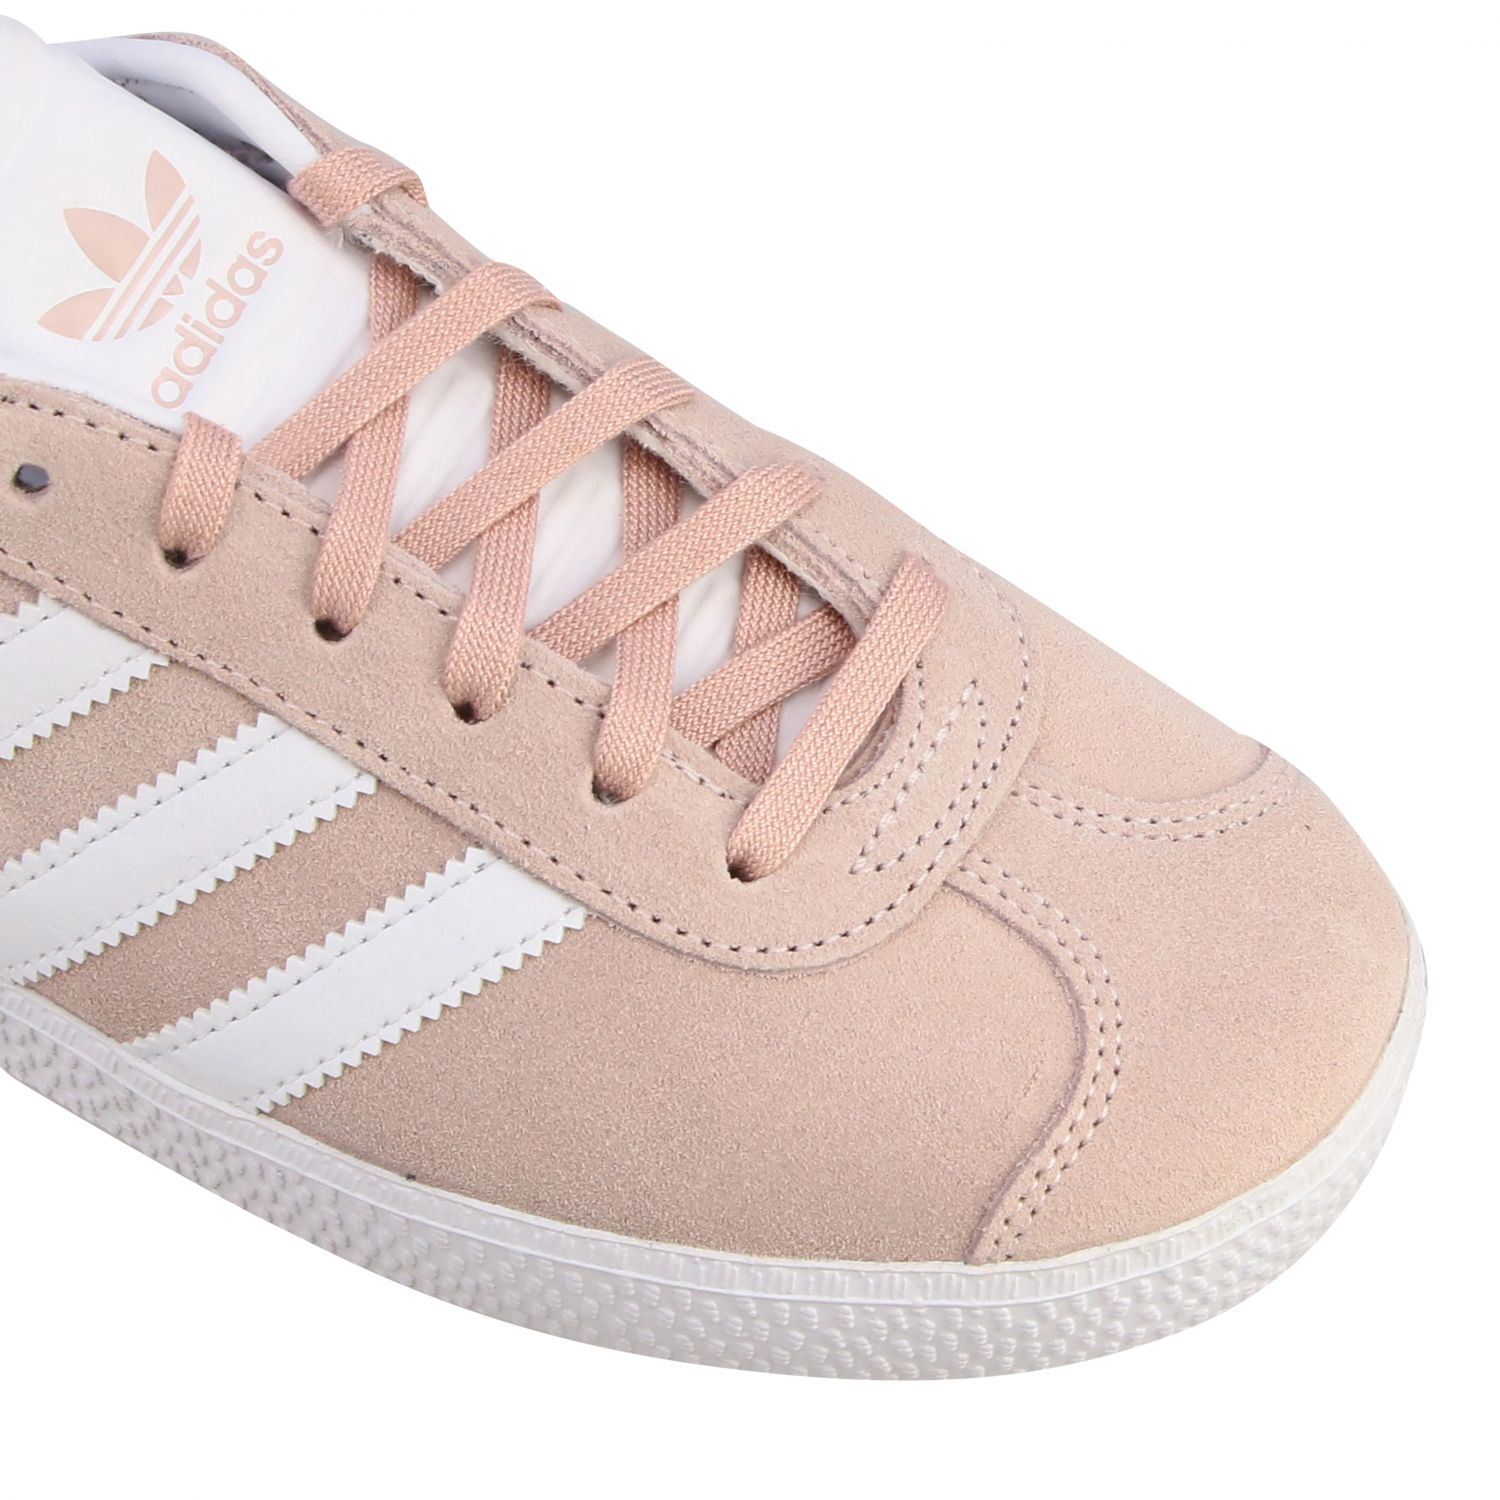 Shoes Adidas Originals: Gazelle J Adidas Originals sneakers in synthetic suede and leather pink 4